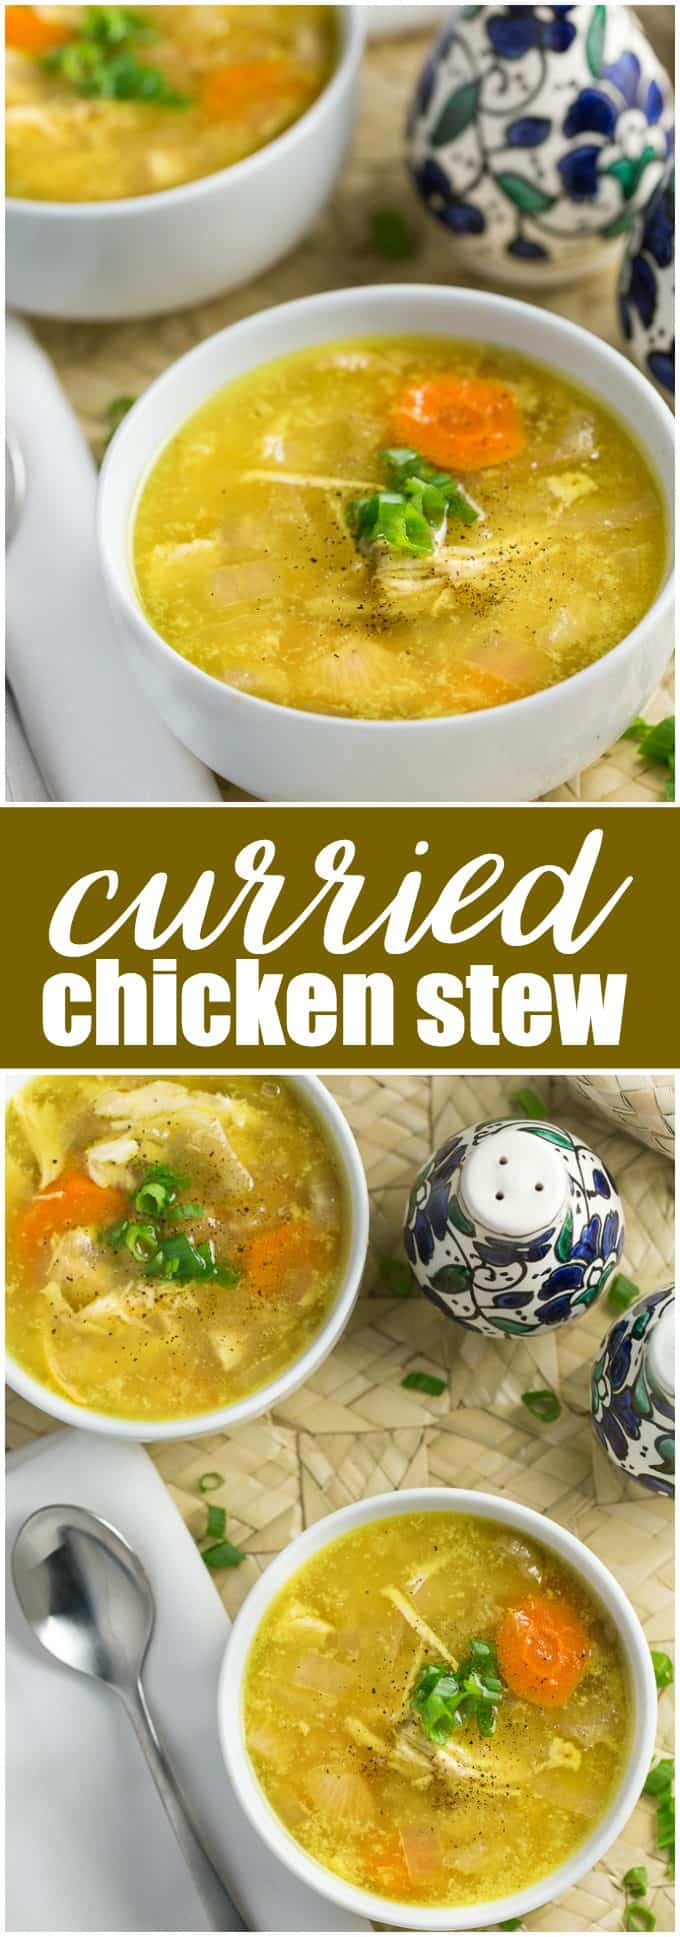 Curried Chicken Stew - Comforting and delicious! This easy crockpot stew recipe is made with tender chicken, coconut milk, curry powder, and fresh ginger.